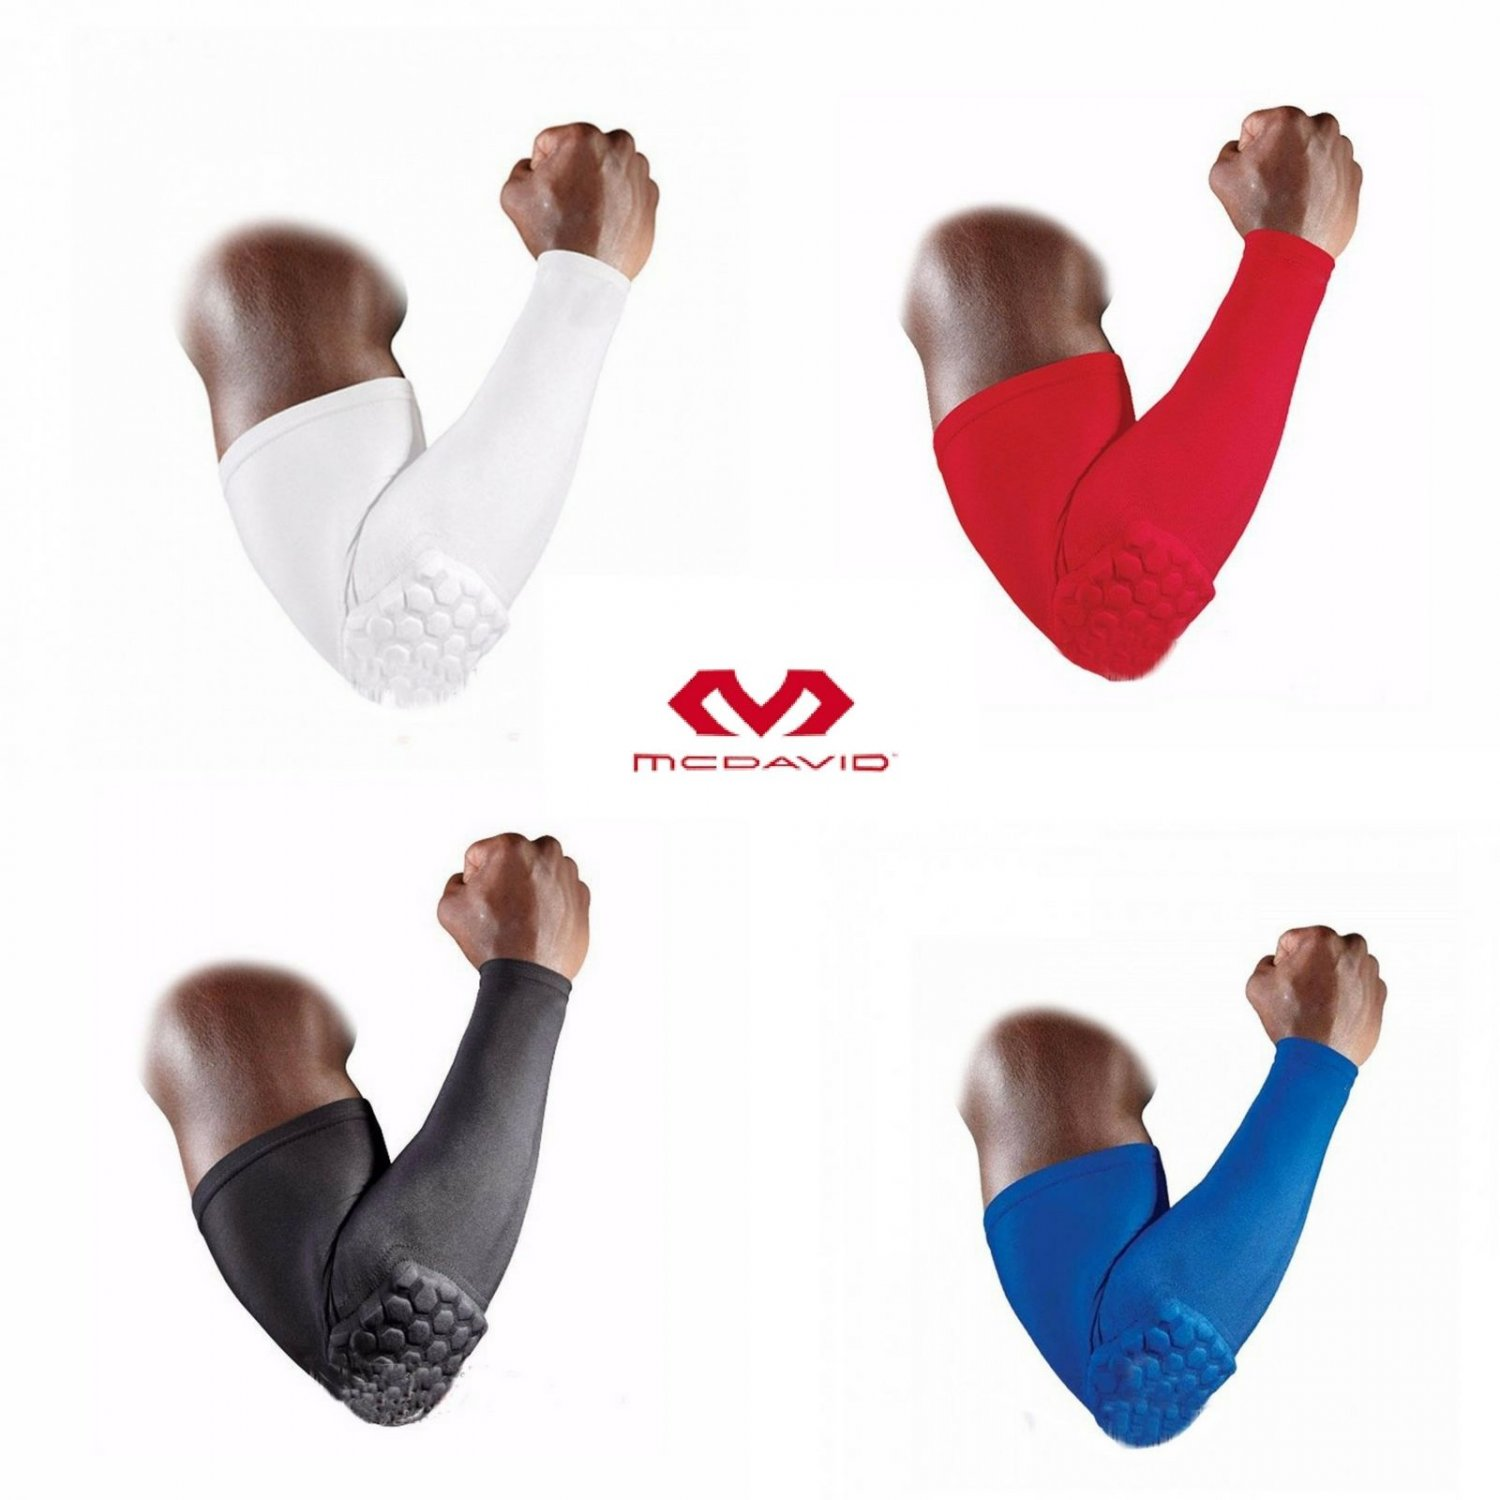 Mcdavid Honeycomb Elbow Protector Basketball Arm Support Sleeve Warmer Pad Hex